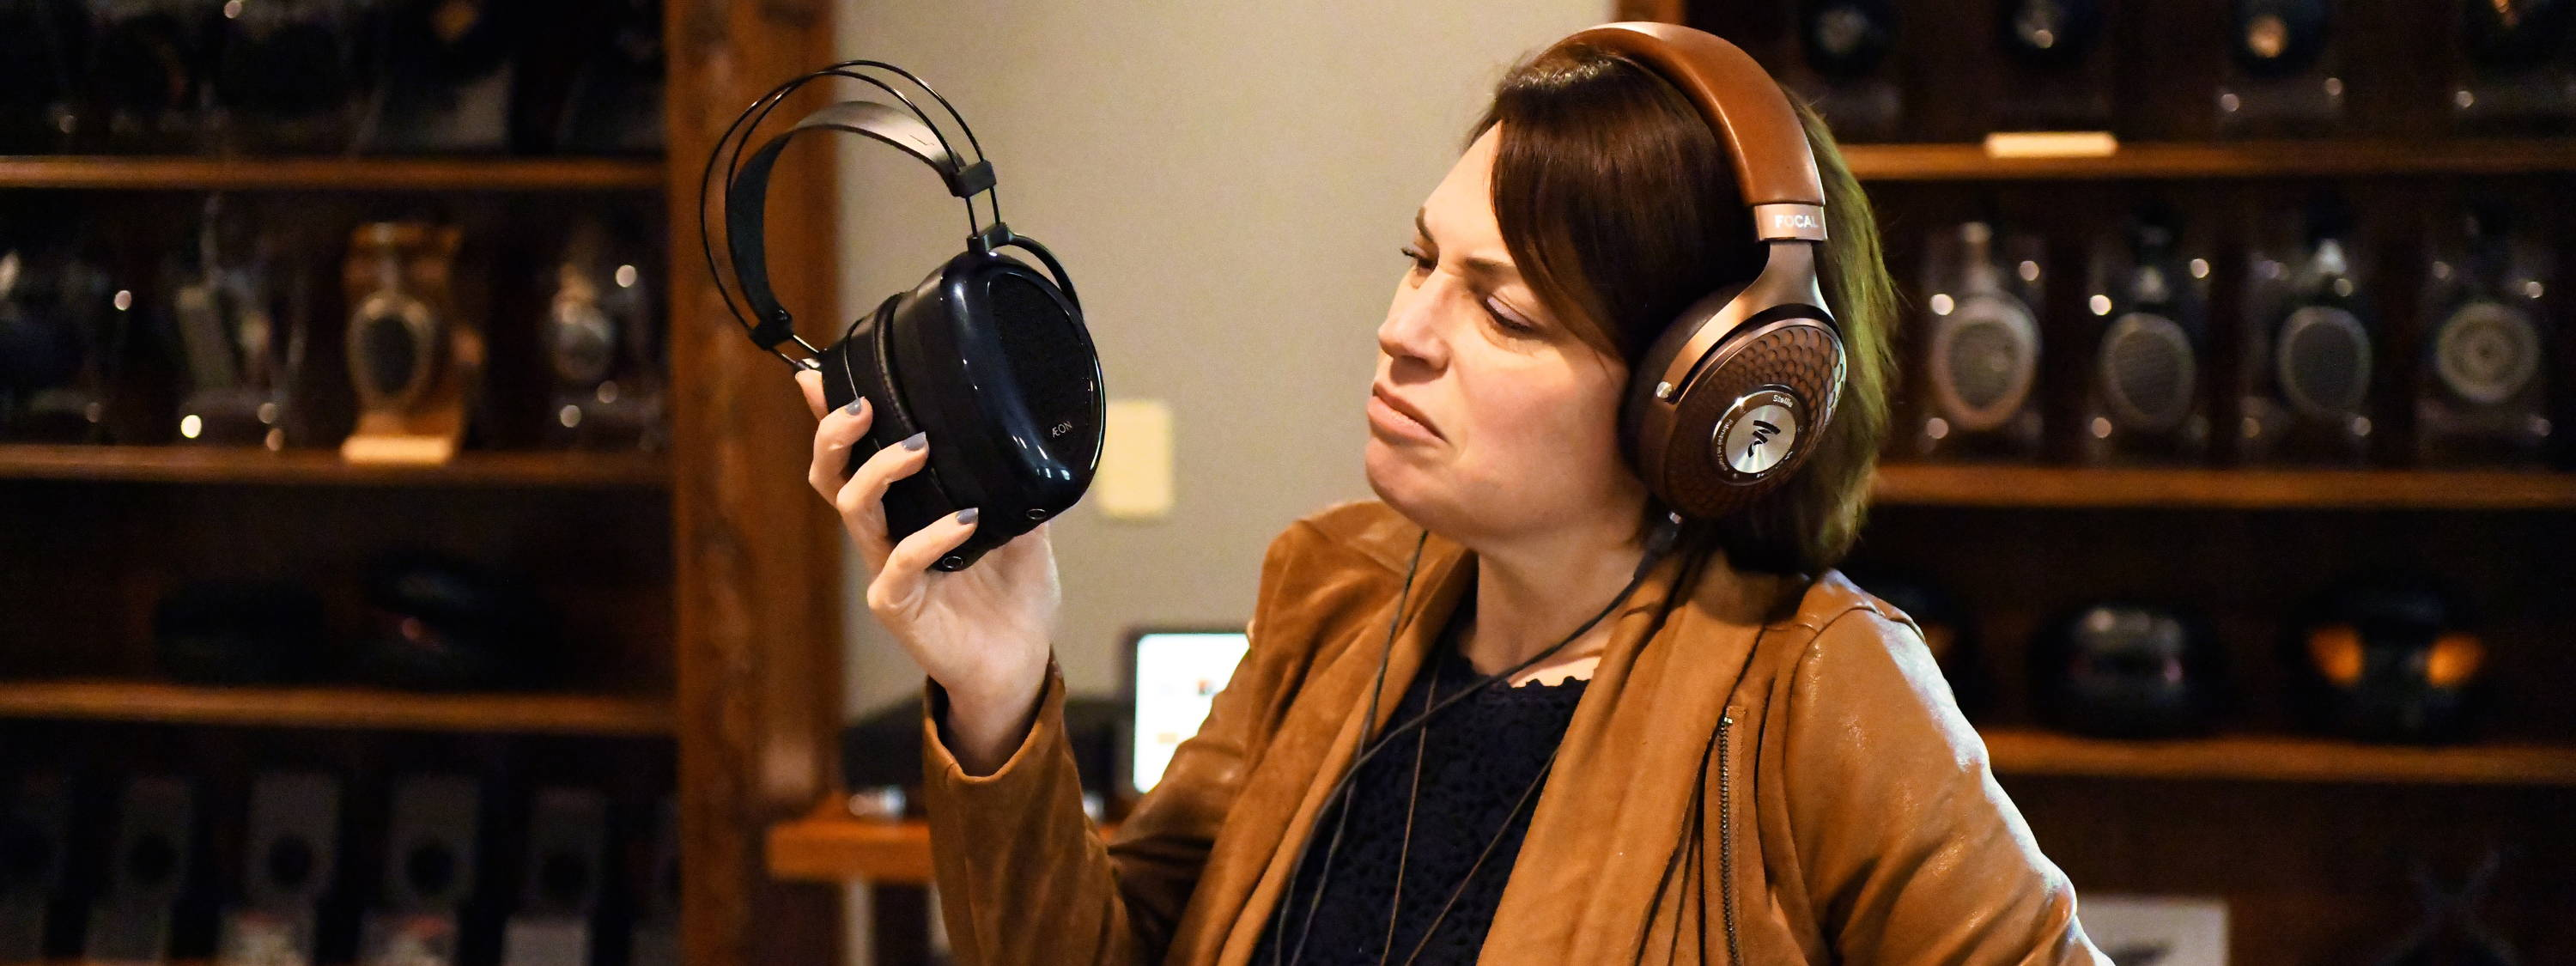 Woman looking unhappy with her headphones